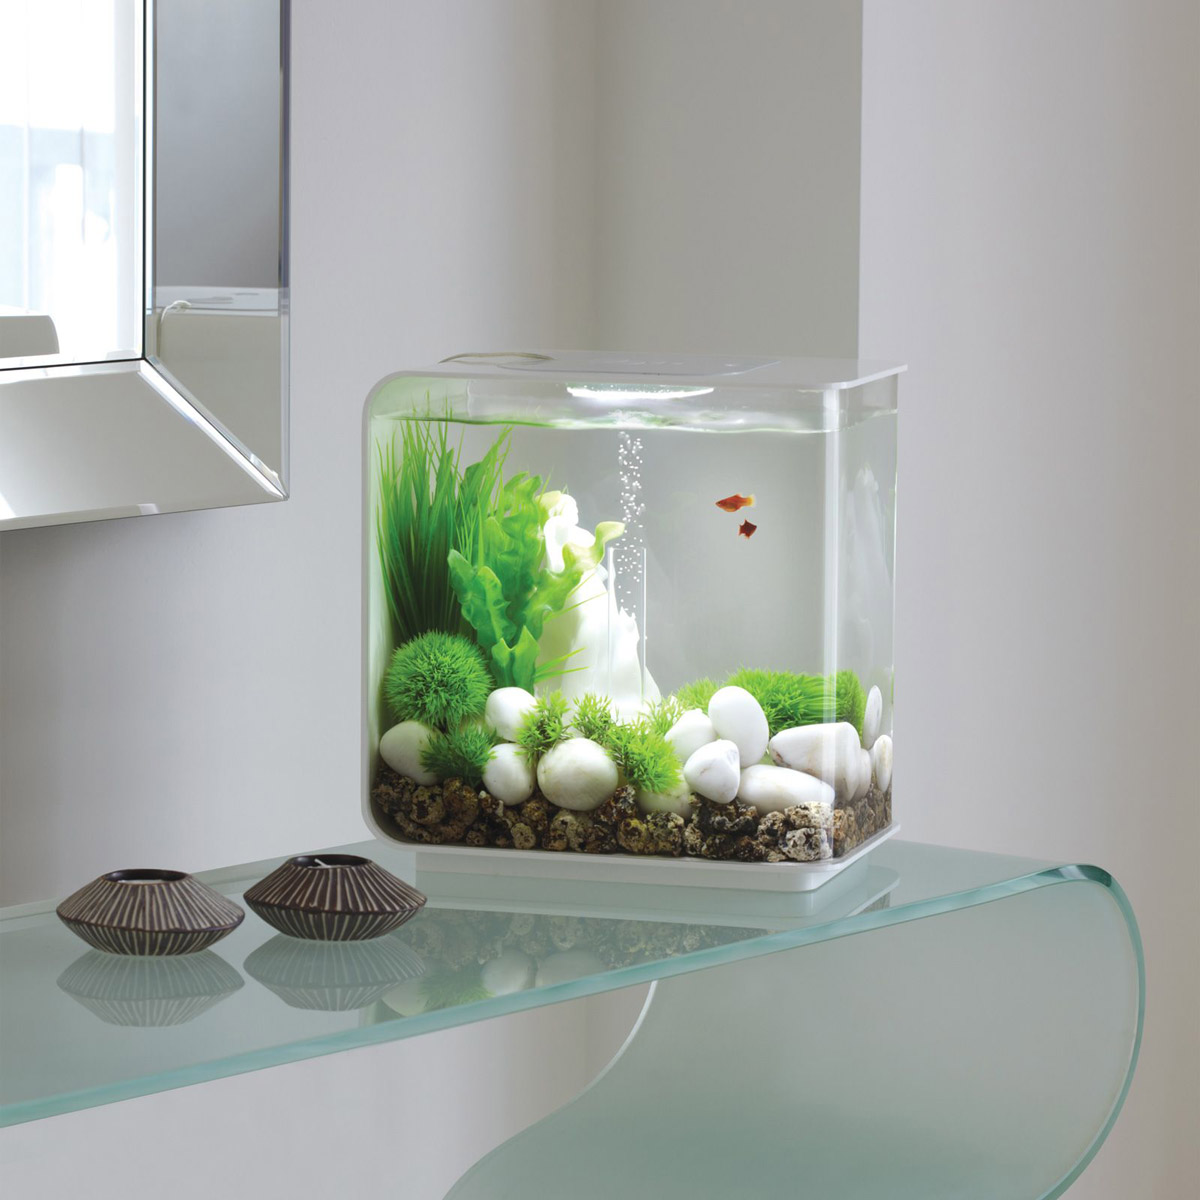 Biorb flow aquarium the green head for Aquarium decoration ideas cheap